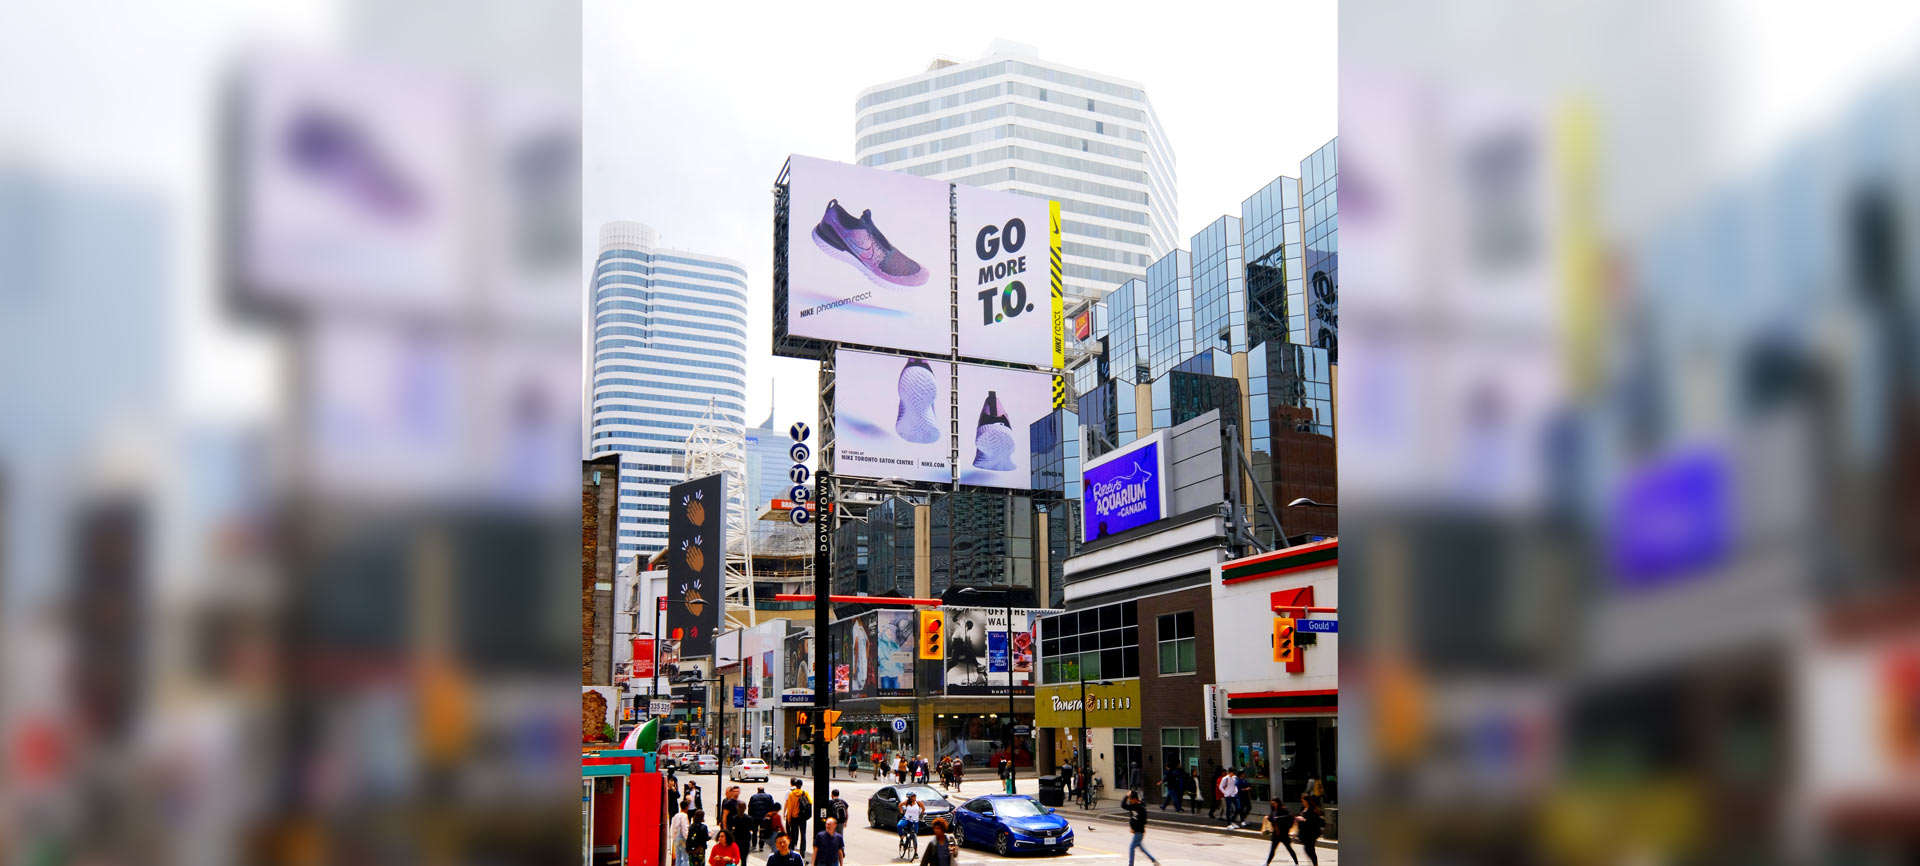 YouTube Music - Shawn Mendes - Yonge-Dundas Square - Spectaculars - AOB Tower North Domination (Toronto, Ontario)